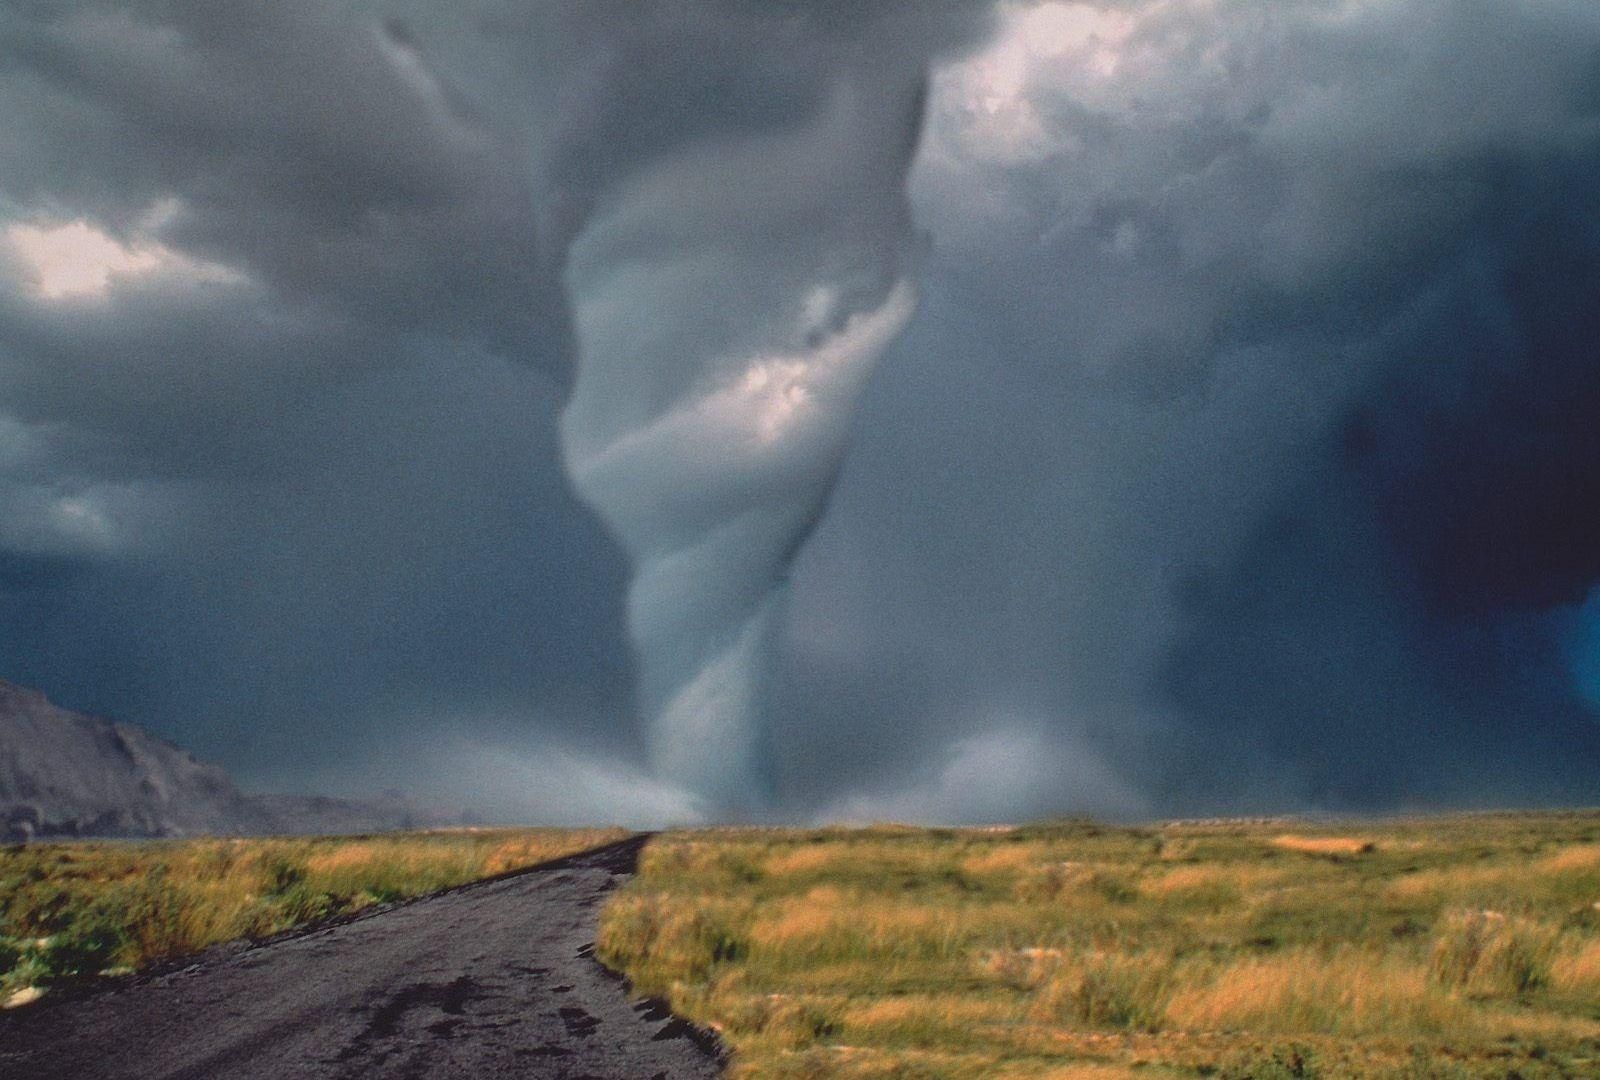 Twister Tag wallpapers: Storm Nature Tornadoes Tornado Twister ...